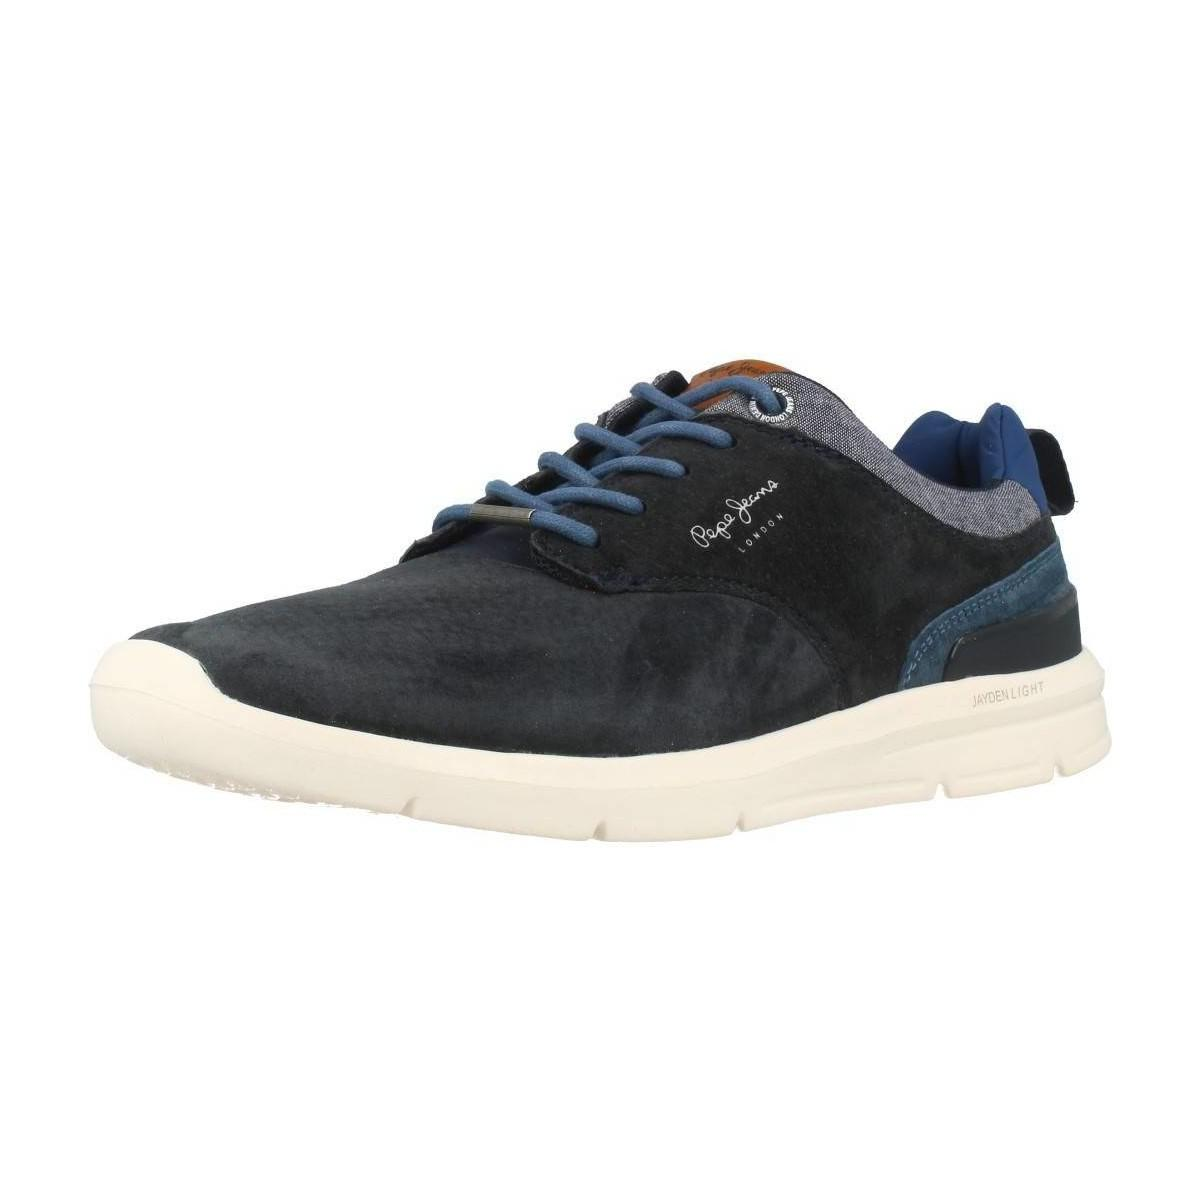 b82f5f38d98 Lyst - Pepe Jeans Pms30409 Men s Shoes (trainers) In Blue in Blue ...